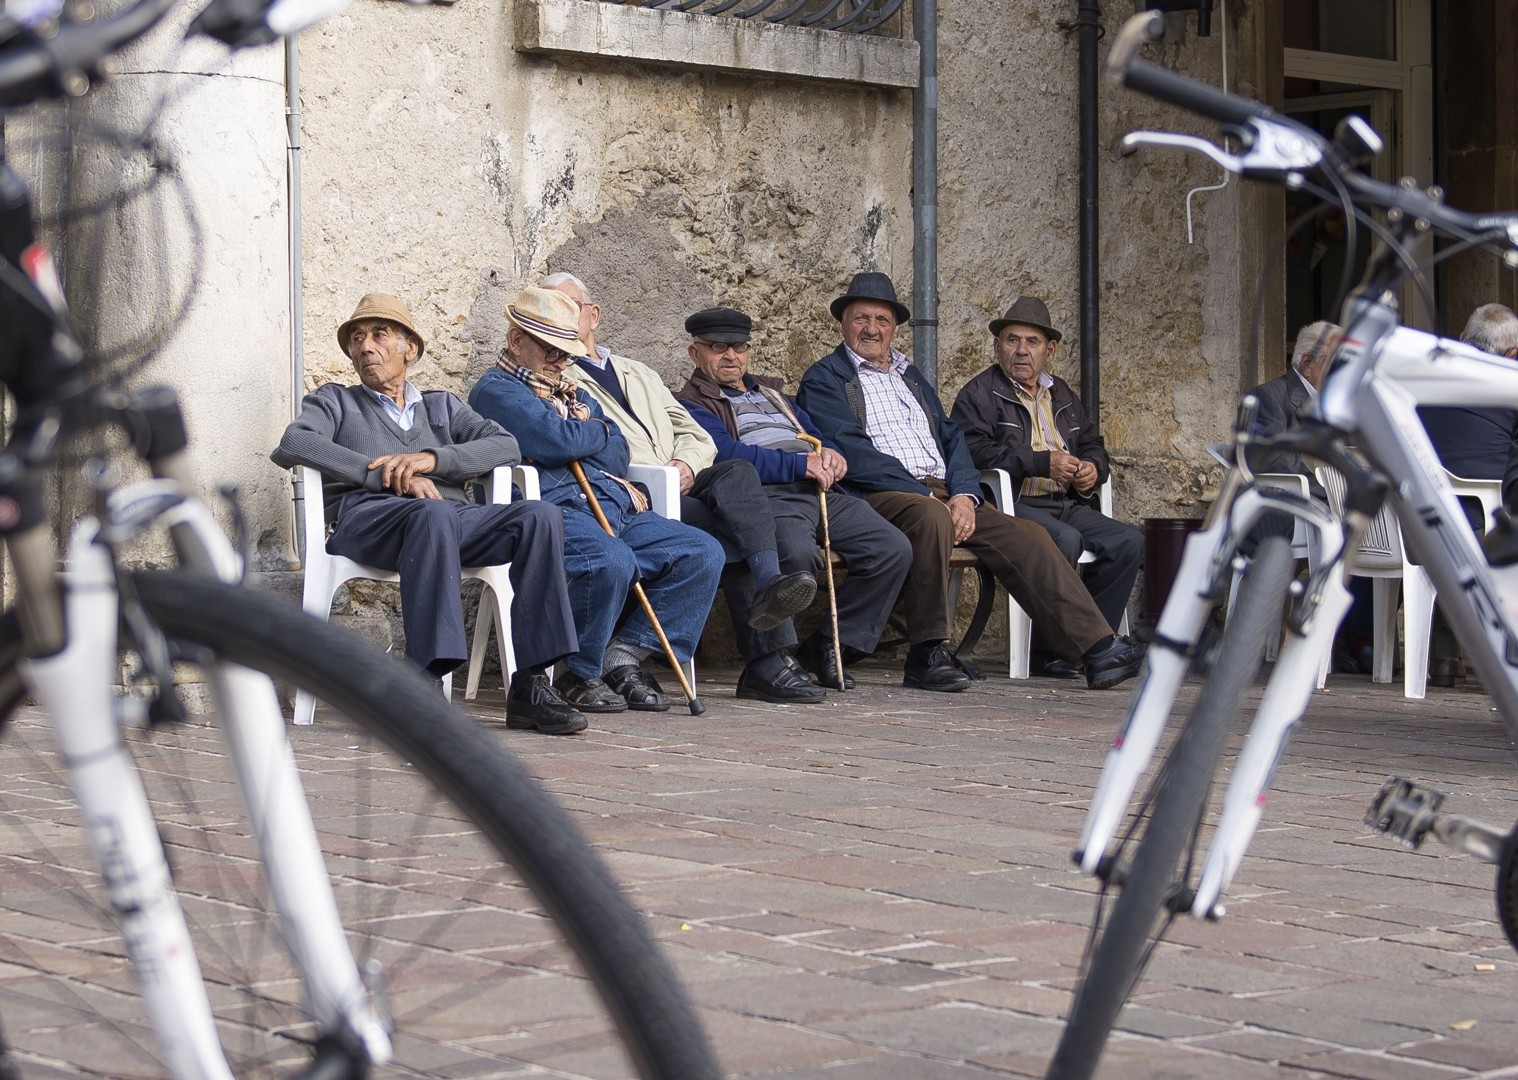 leisure-cycling-holiday-italy-amalfi-culture.jpg - Italy - Cilento and The Amalfi Coast - Self-Guided Leisure Cycling Holiday - Italia Leisure and Family Cycling